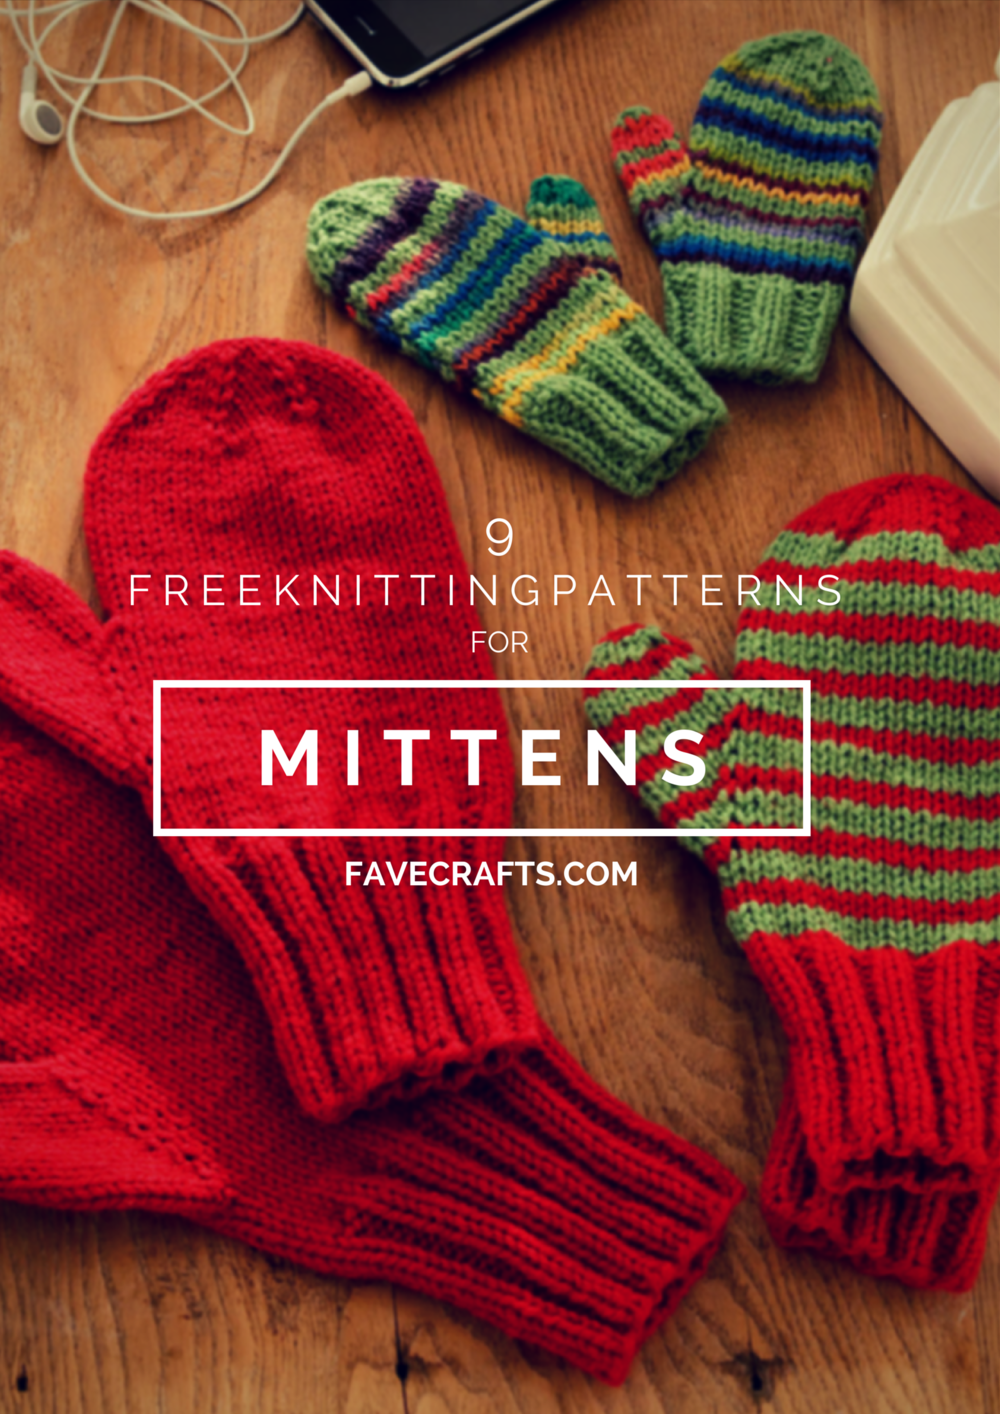 6 Free Knitting Patterns For Mittens Favecrafts Com